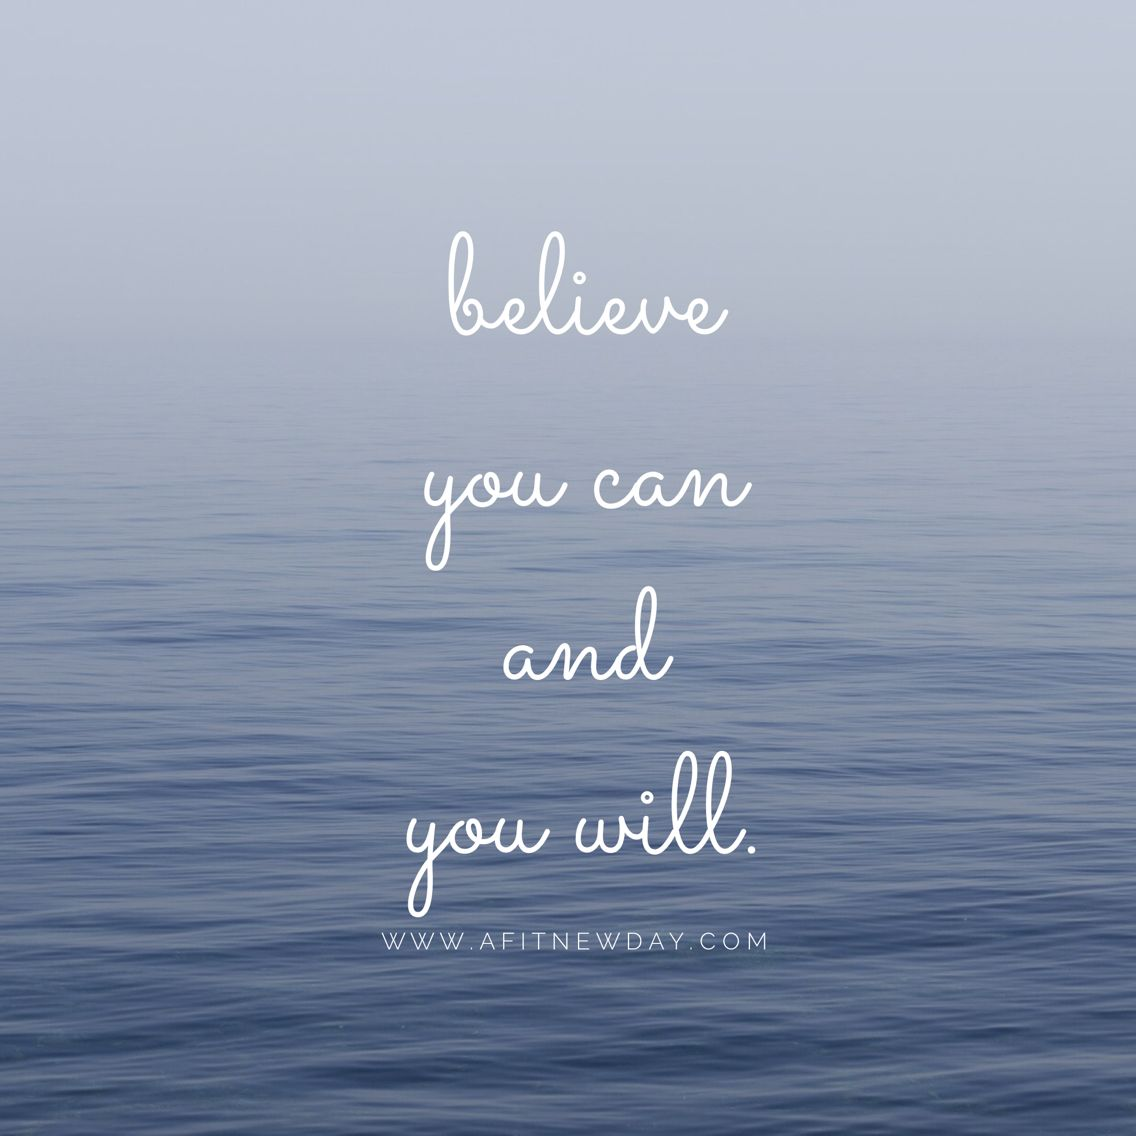 A Fit New Day: believe you can and you will. Inspiring quote. Motivational quote.